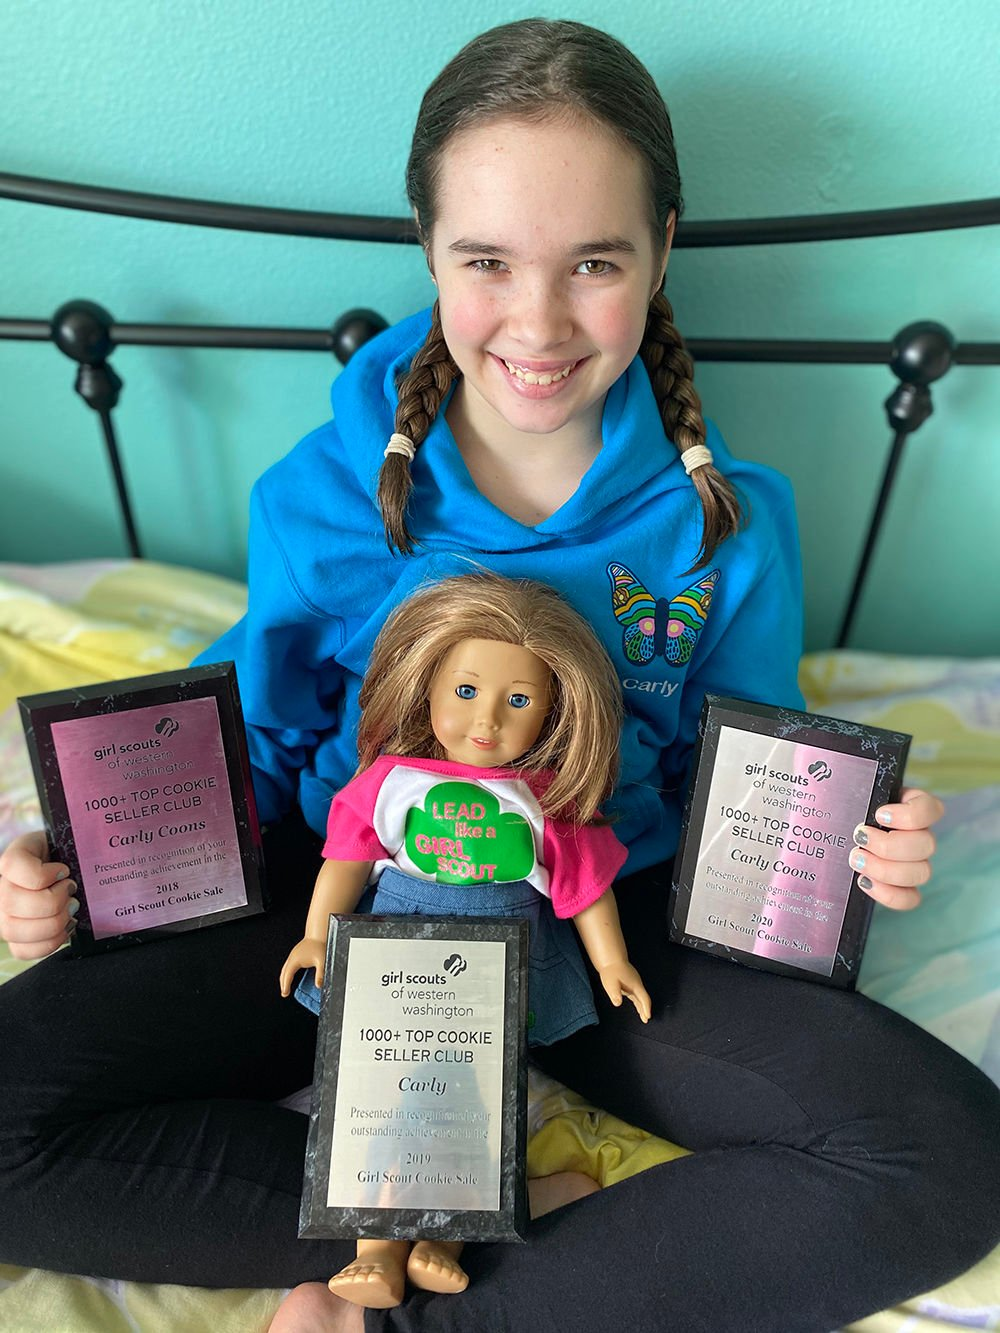 Girl Scout Carly Coons of Longview